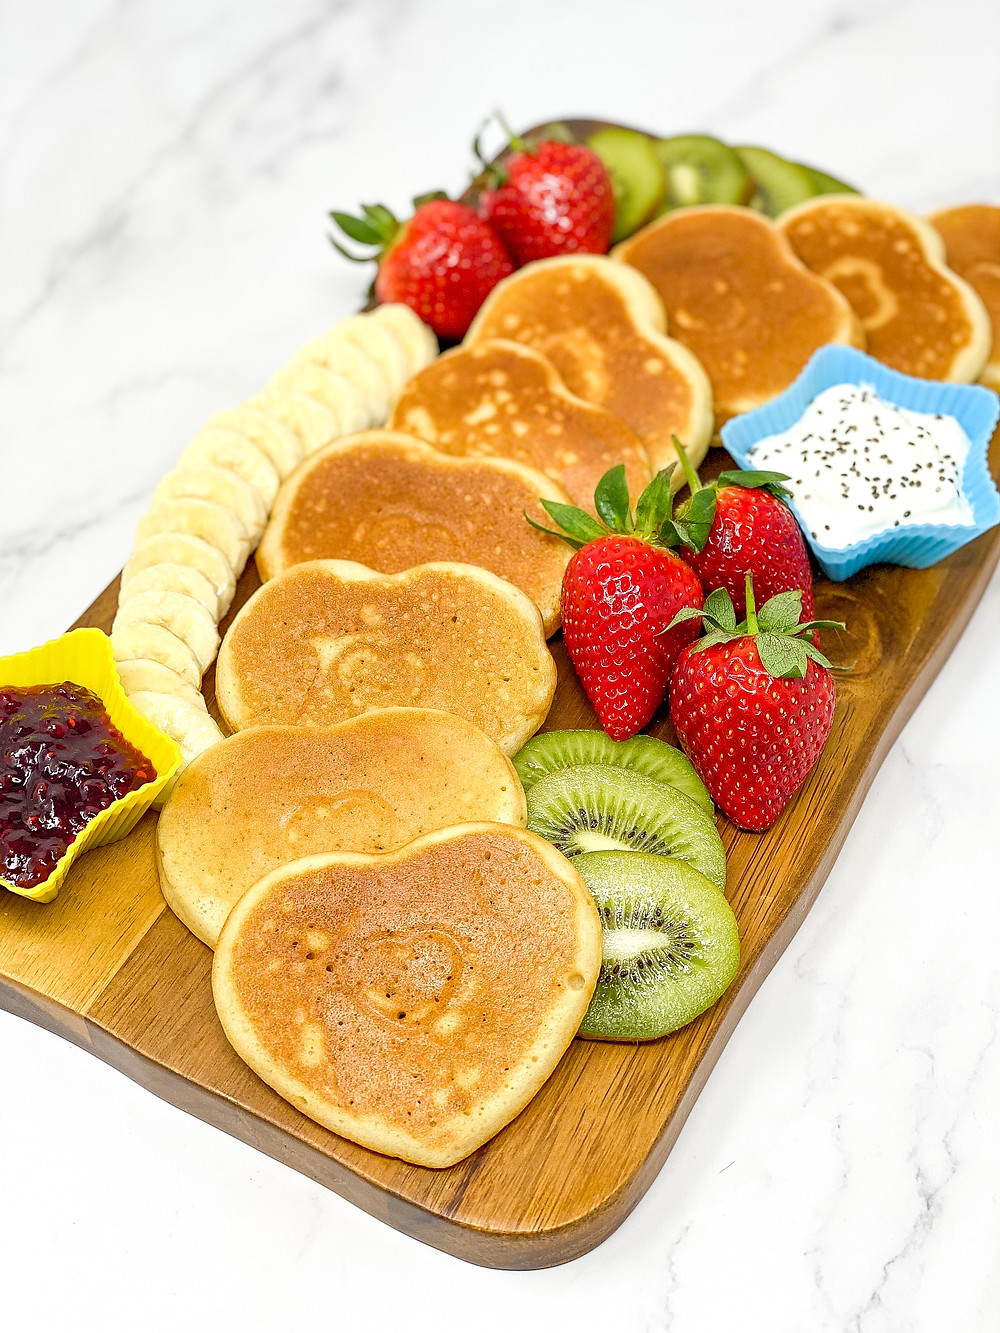 MOTHER'S DAY PANCAKES PLATTER 💕